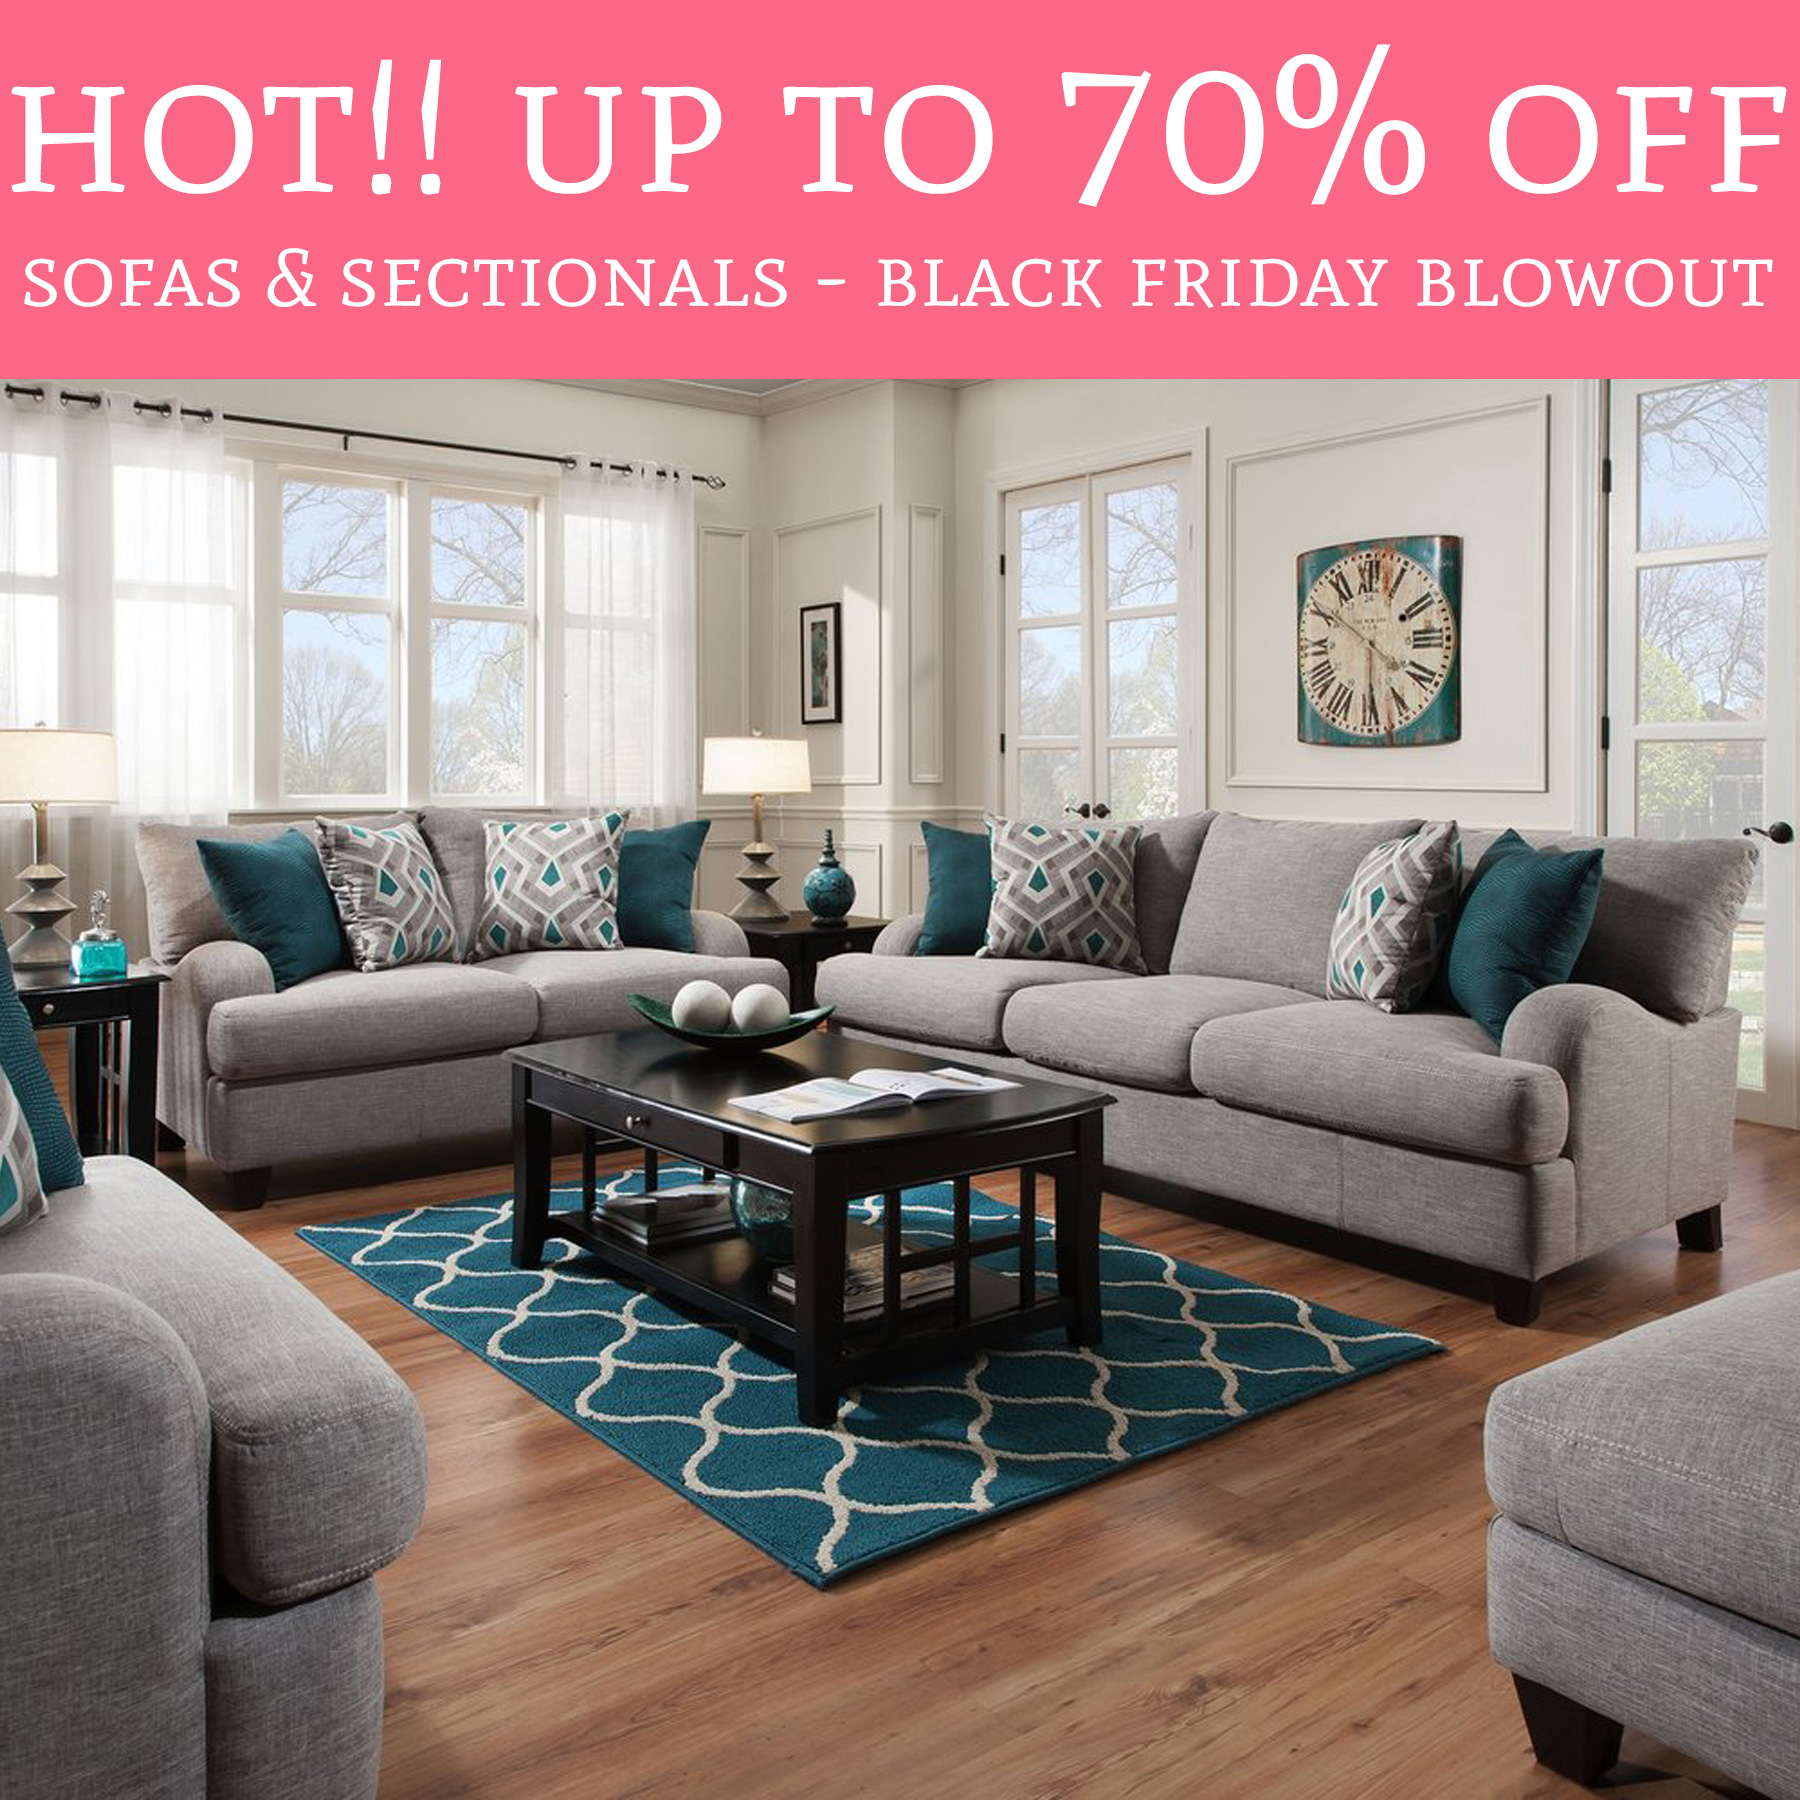 HOT!! Black Friday Blowout Sale! Up To 70% Off Sofas